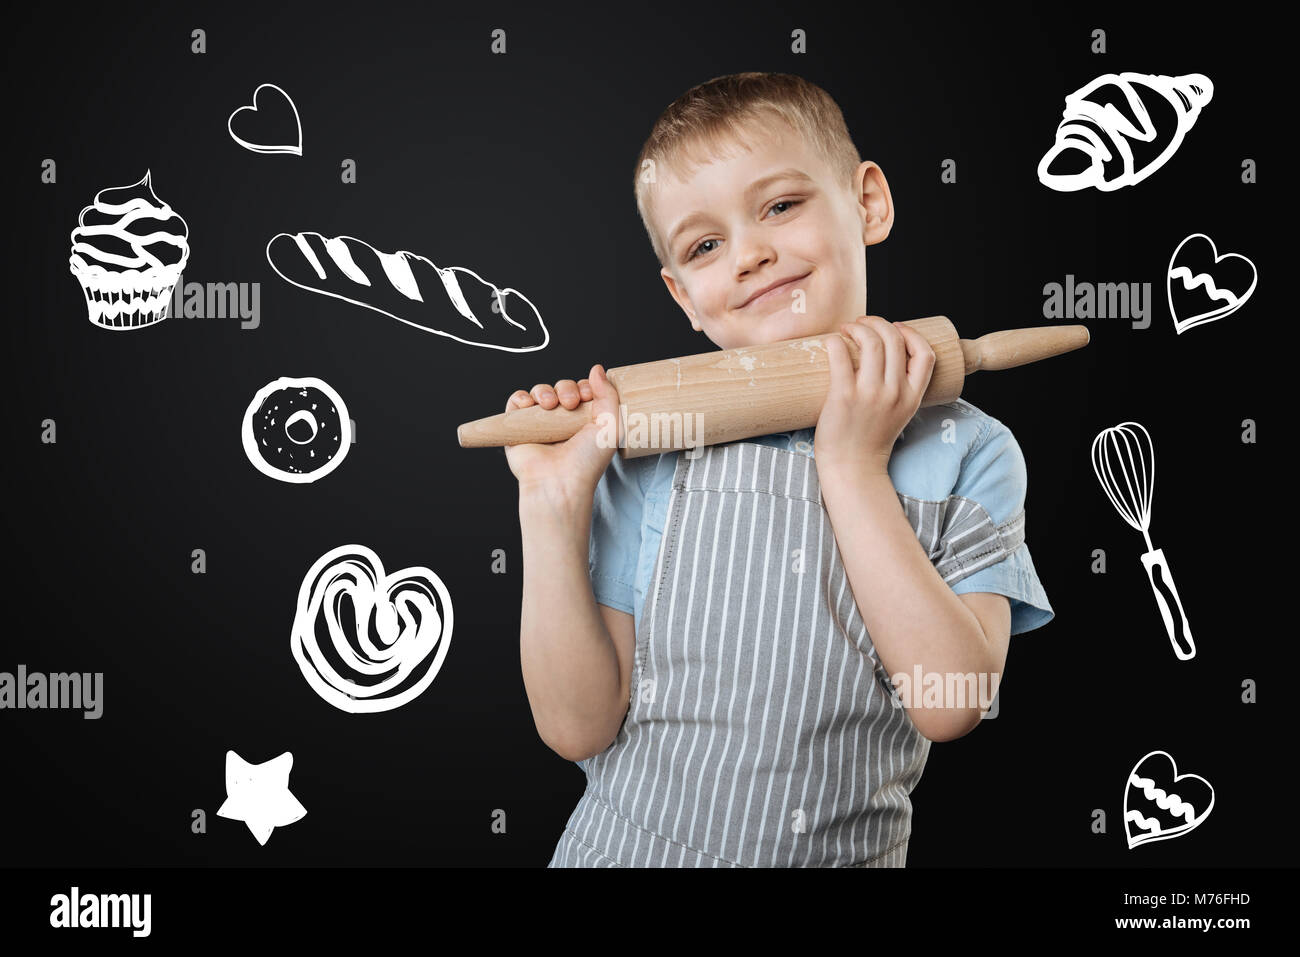 Positive boy dreaming of becoming a cook and holding a rolling pin - Stock Image